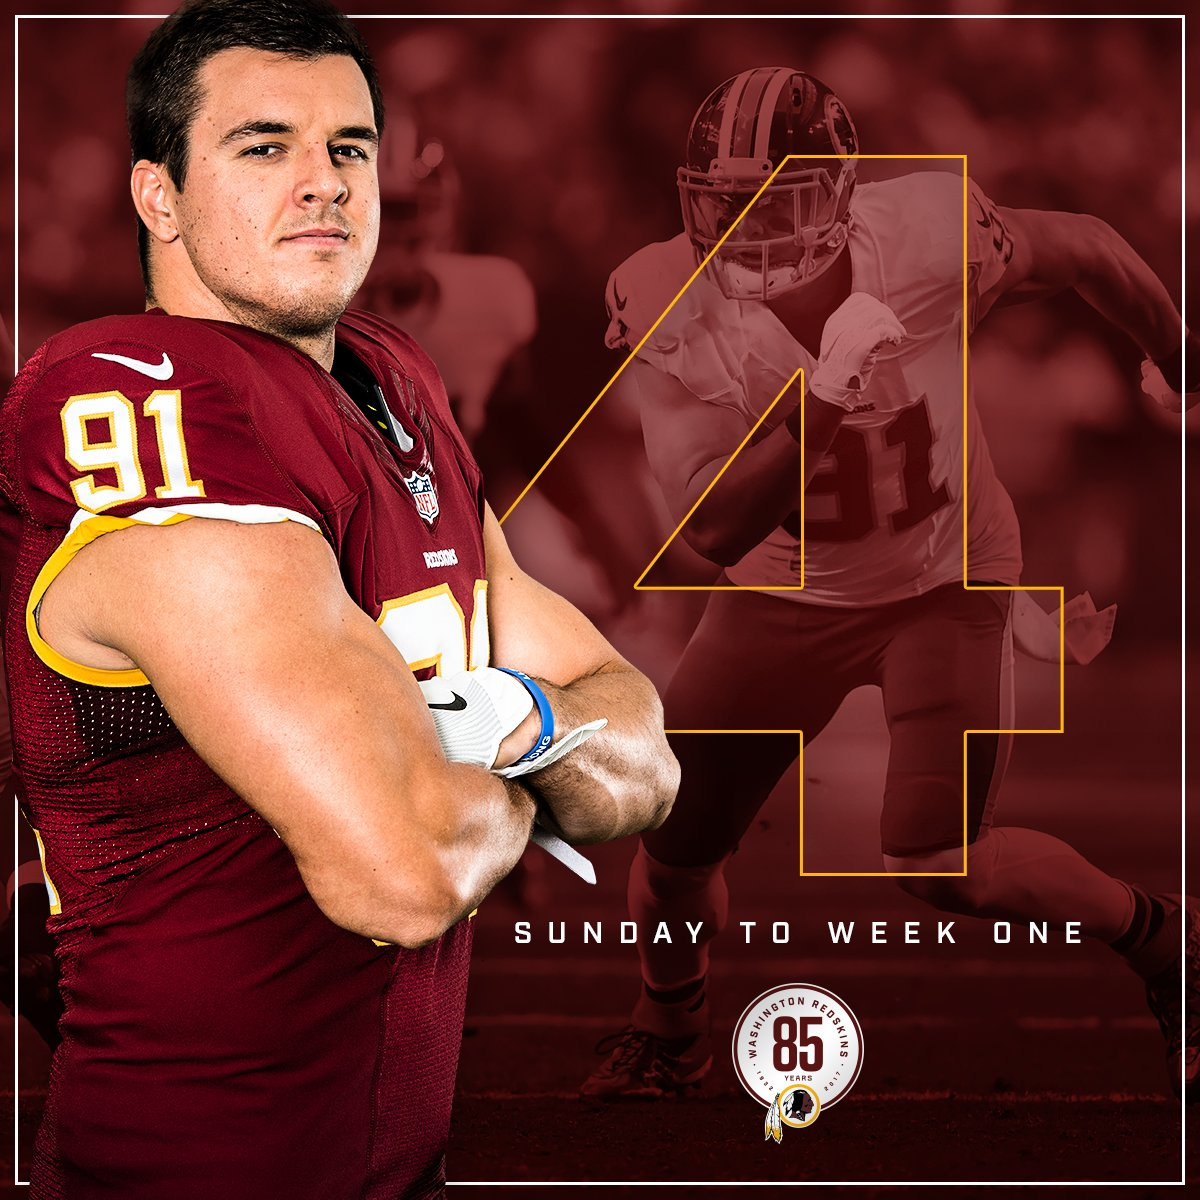 Countdown to kickoff: soon.  #HTTR #PHIvsWAS #ByAnyMeans https://t.co/DyidpF2yZc